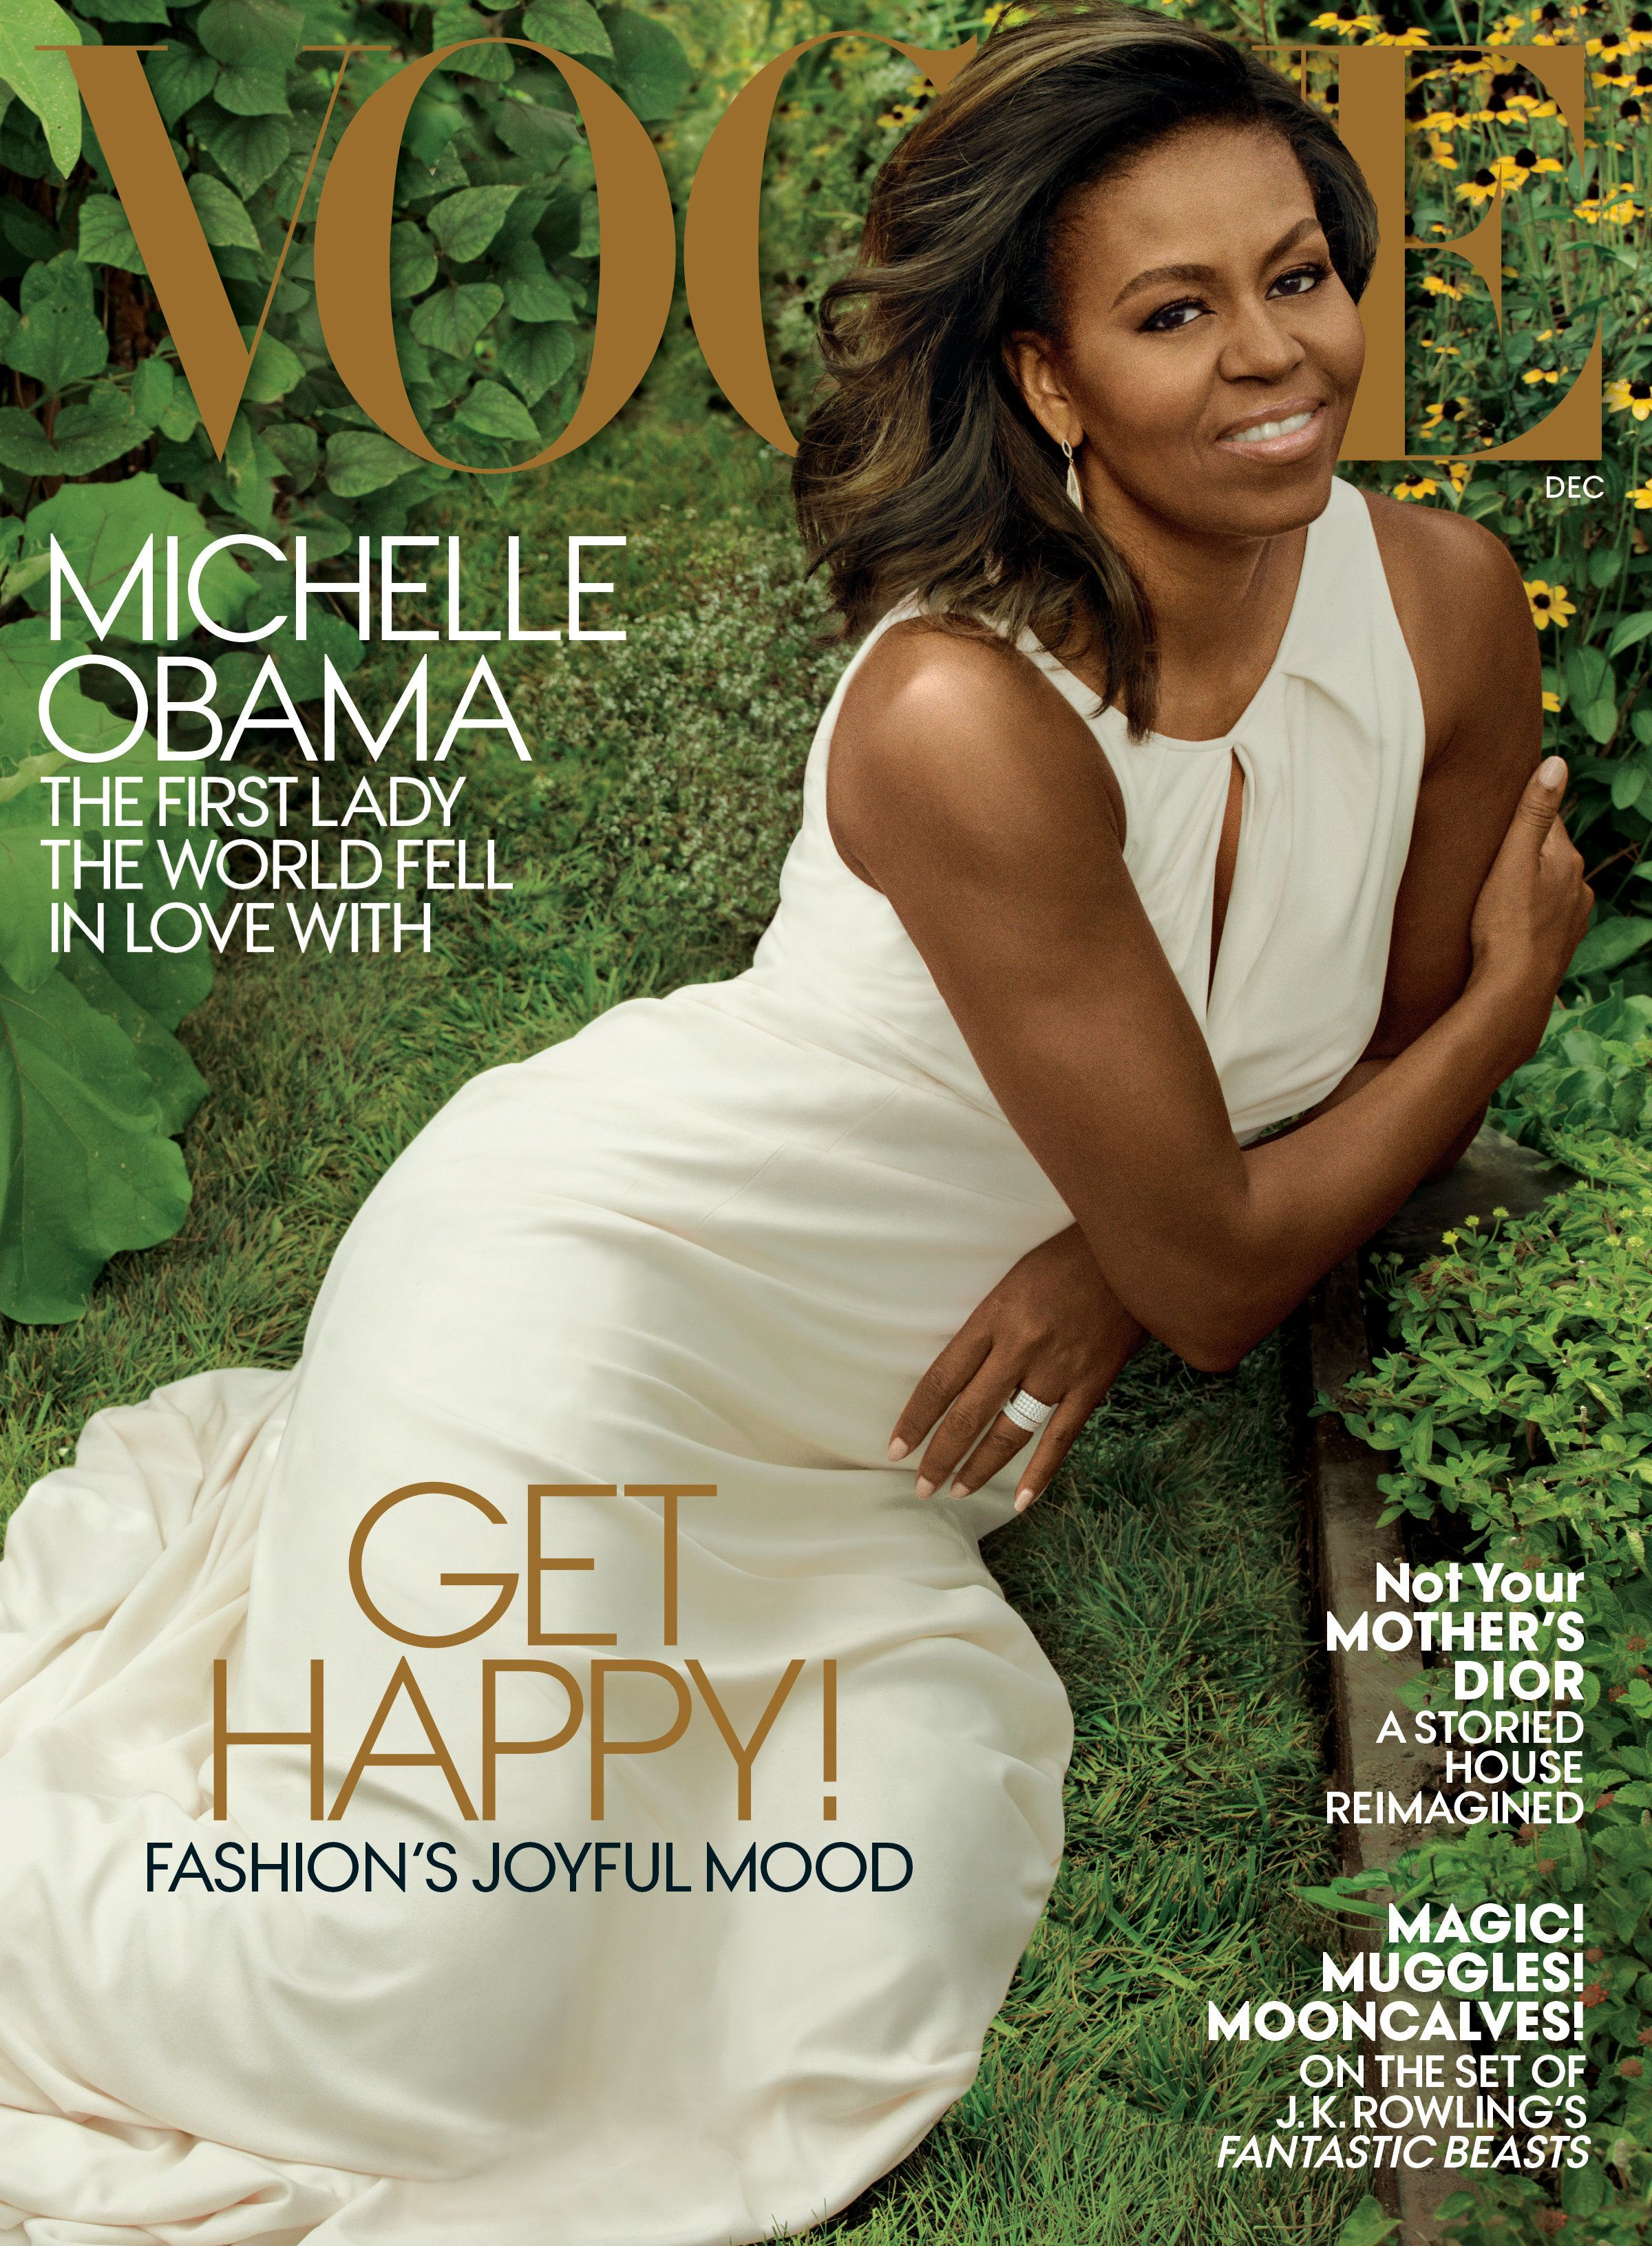 Michelle Obama's December 2016 Vogue cover: More of this,